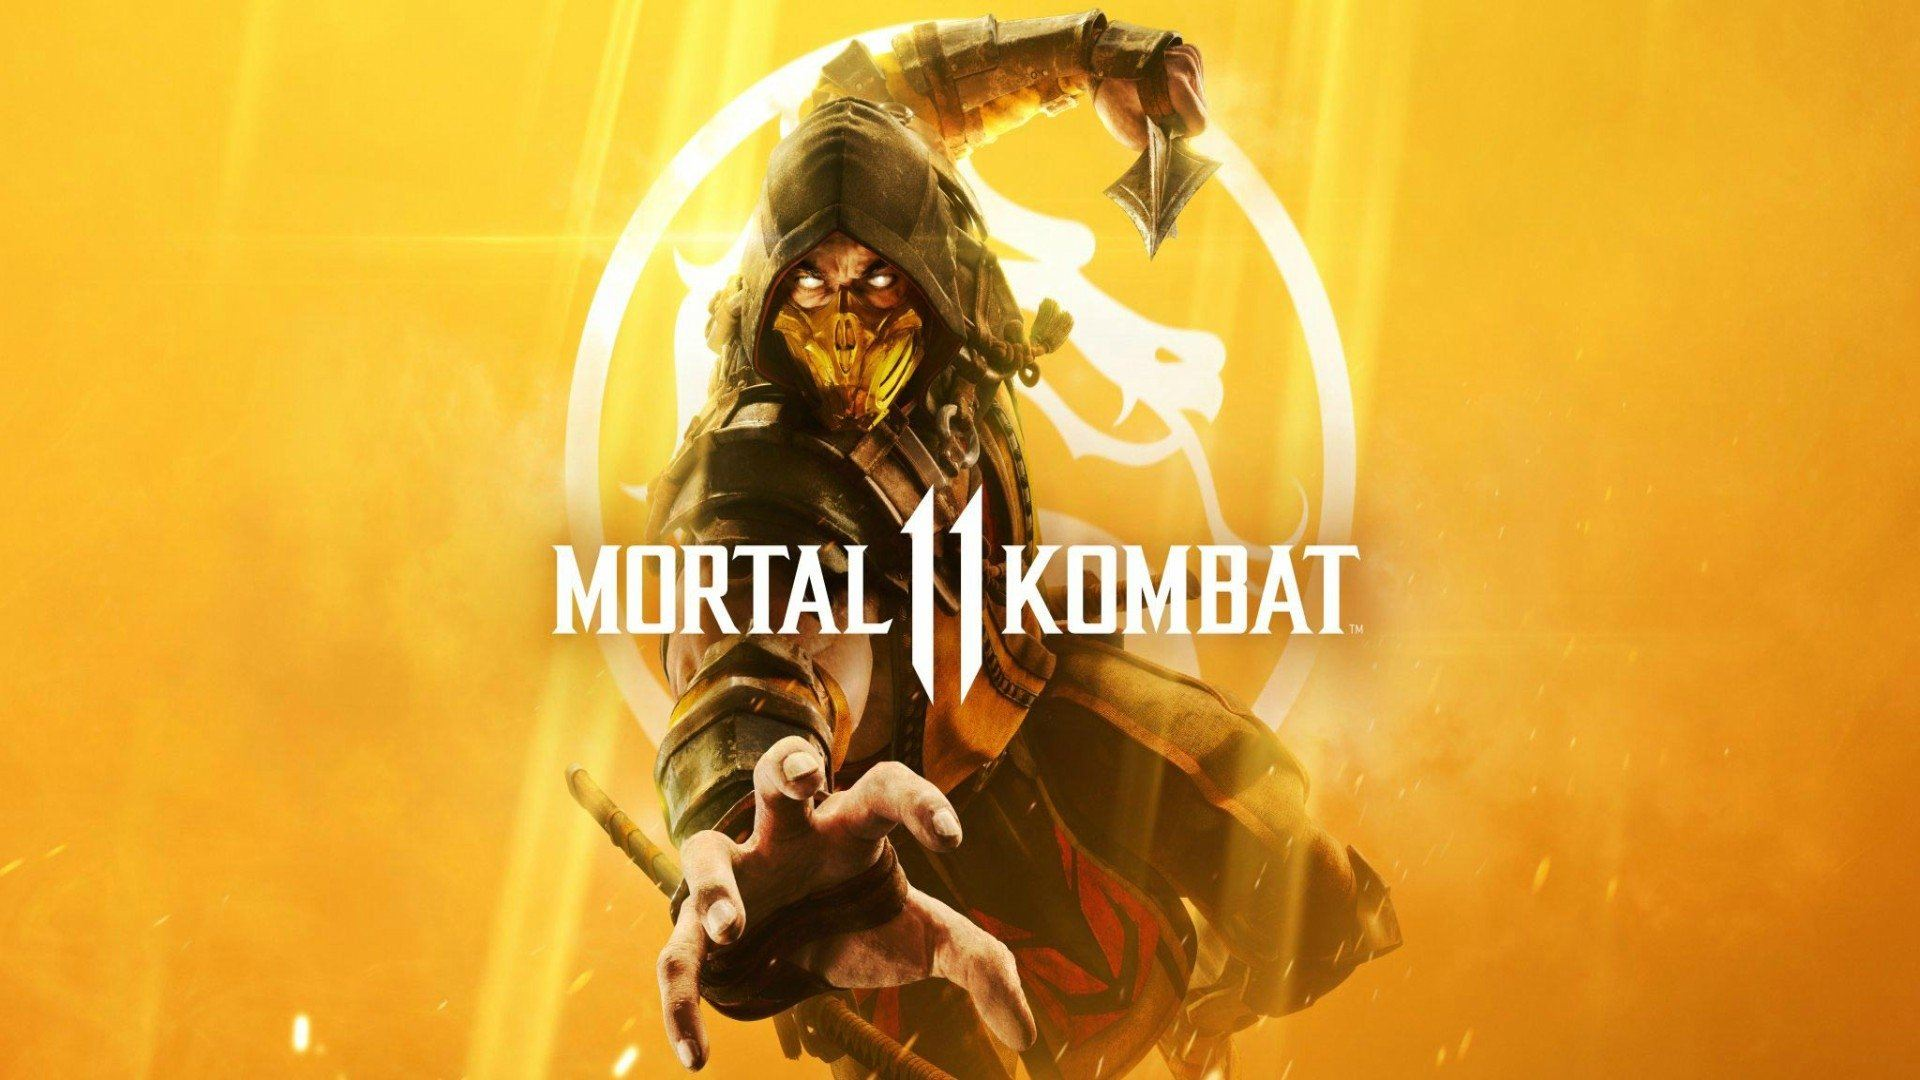 Download Mortal Kombat 11 (v09.29.2020 + All DLCs, MULTi12) [FitGirl Repack] + CRACK ONLY